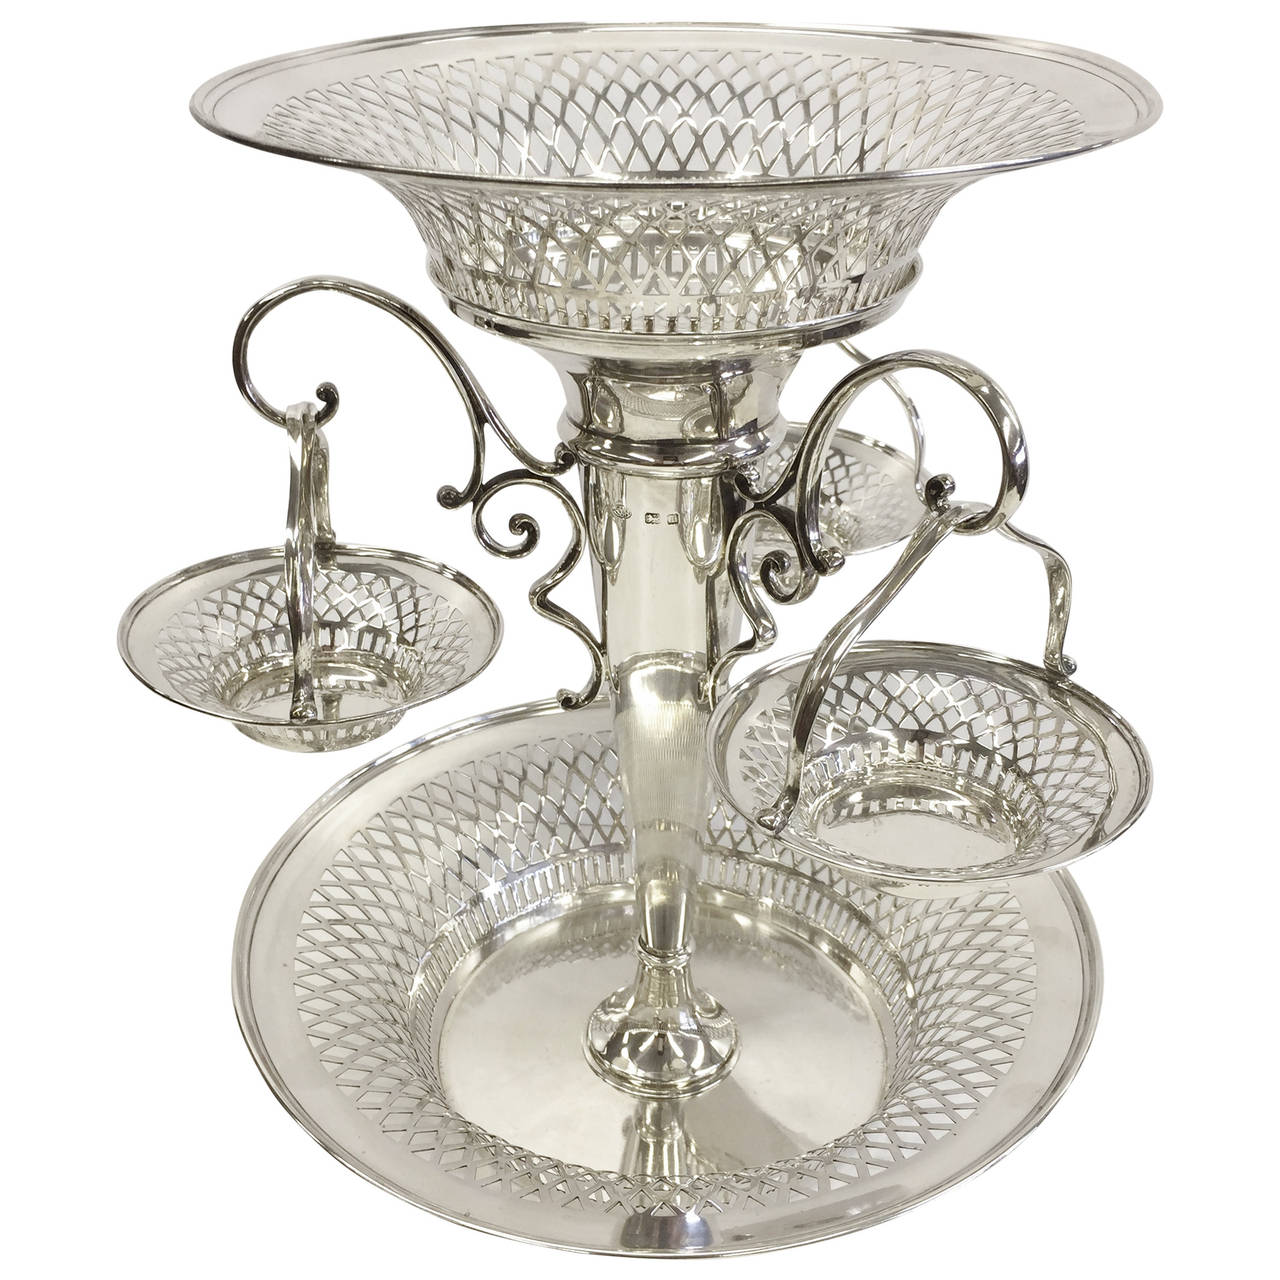 Using Antique Epergne for Dining Table Accessories Ideas: Entrancing Epergne | Redoubtable Fenton Epergne